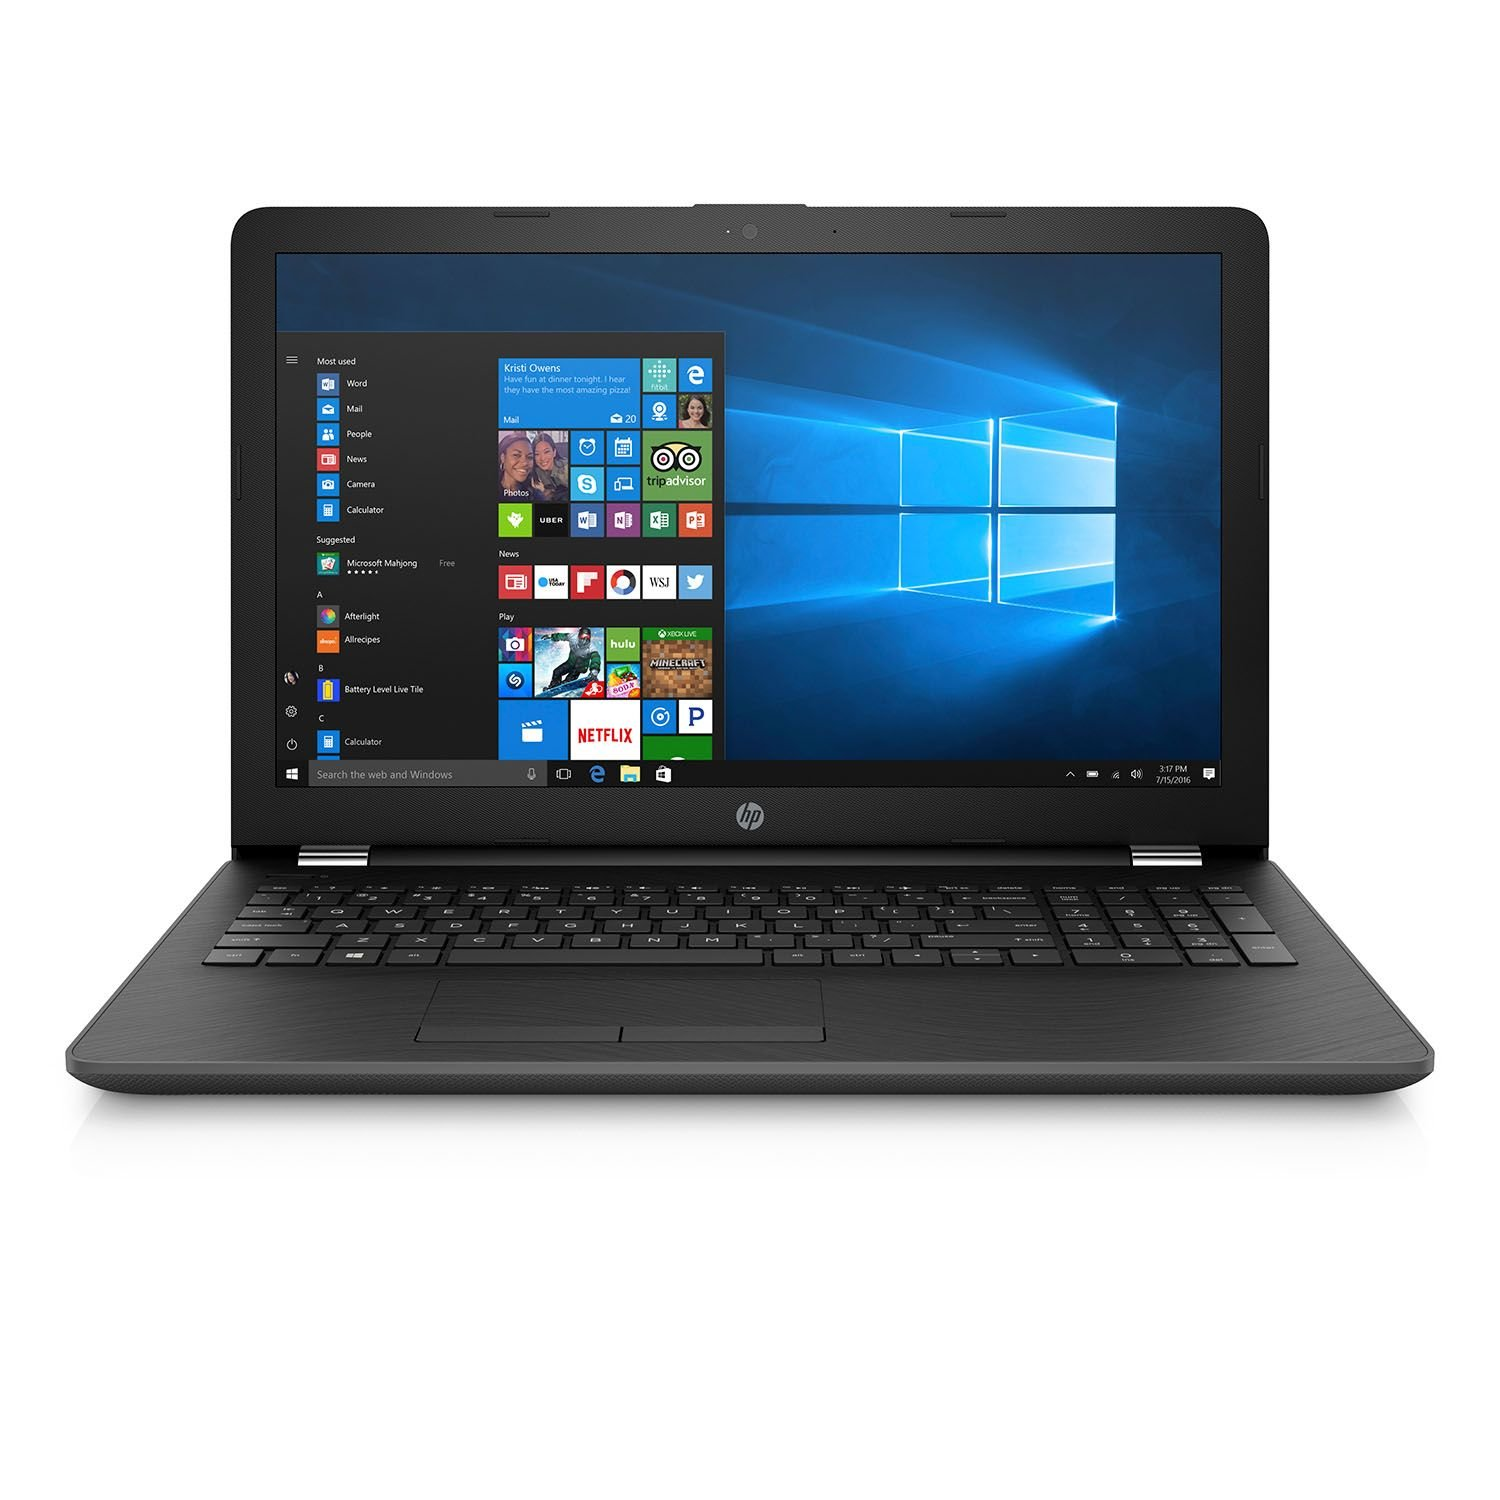 2017 HP Notebook 15.6 Inch High Performance Laptop Computer (Intel Core i7-7500U 2.7GHz up to 3.5GHz, 8GB RAM, 512GB SSD, DVD, WiFi, HD Webcam, ...